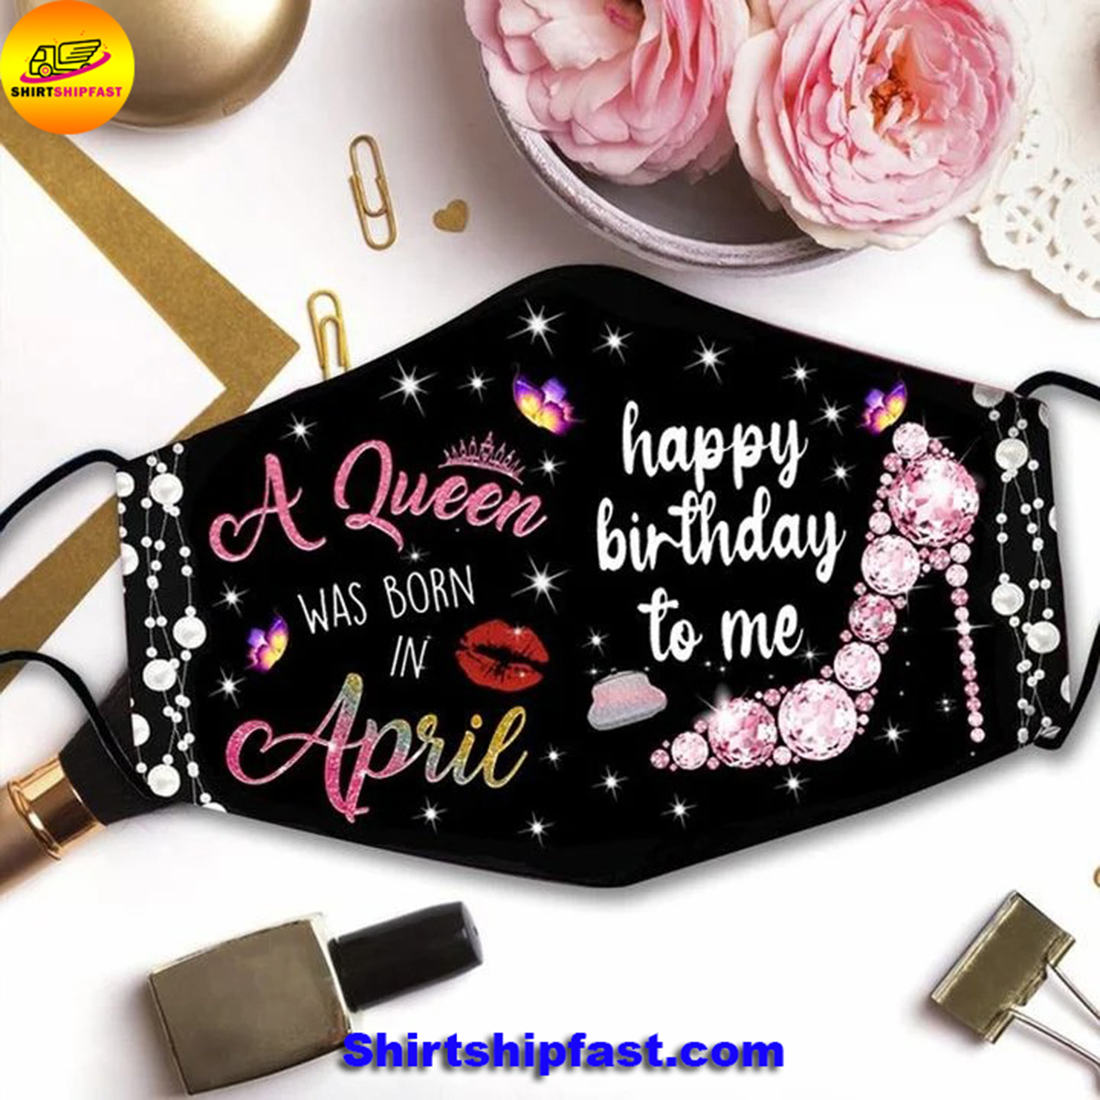 High heels A queen was born in April happy birthday to me face mask - Picture 2